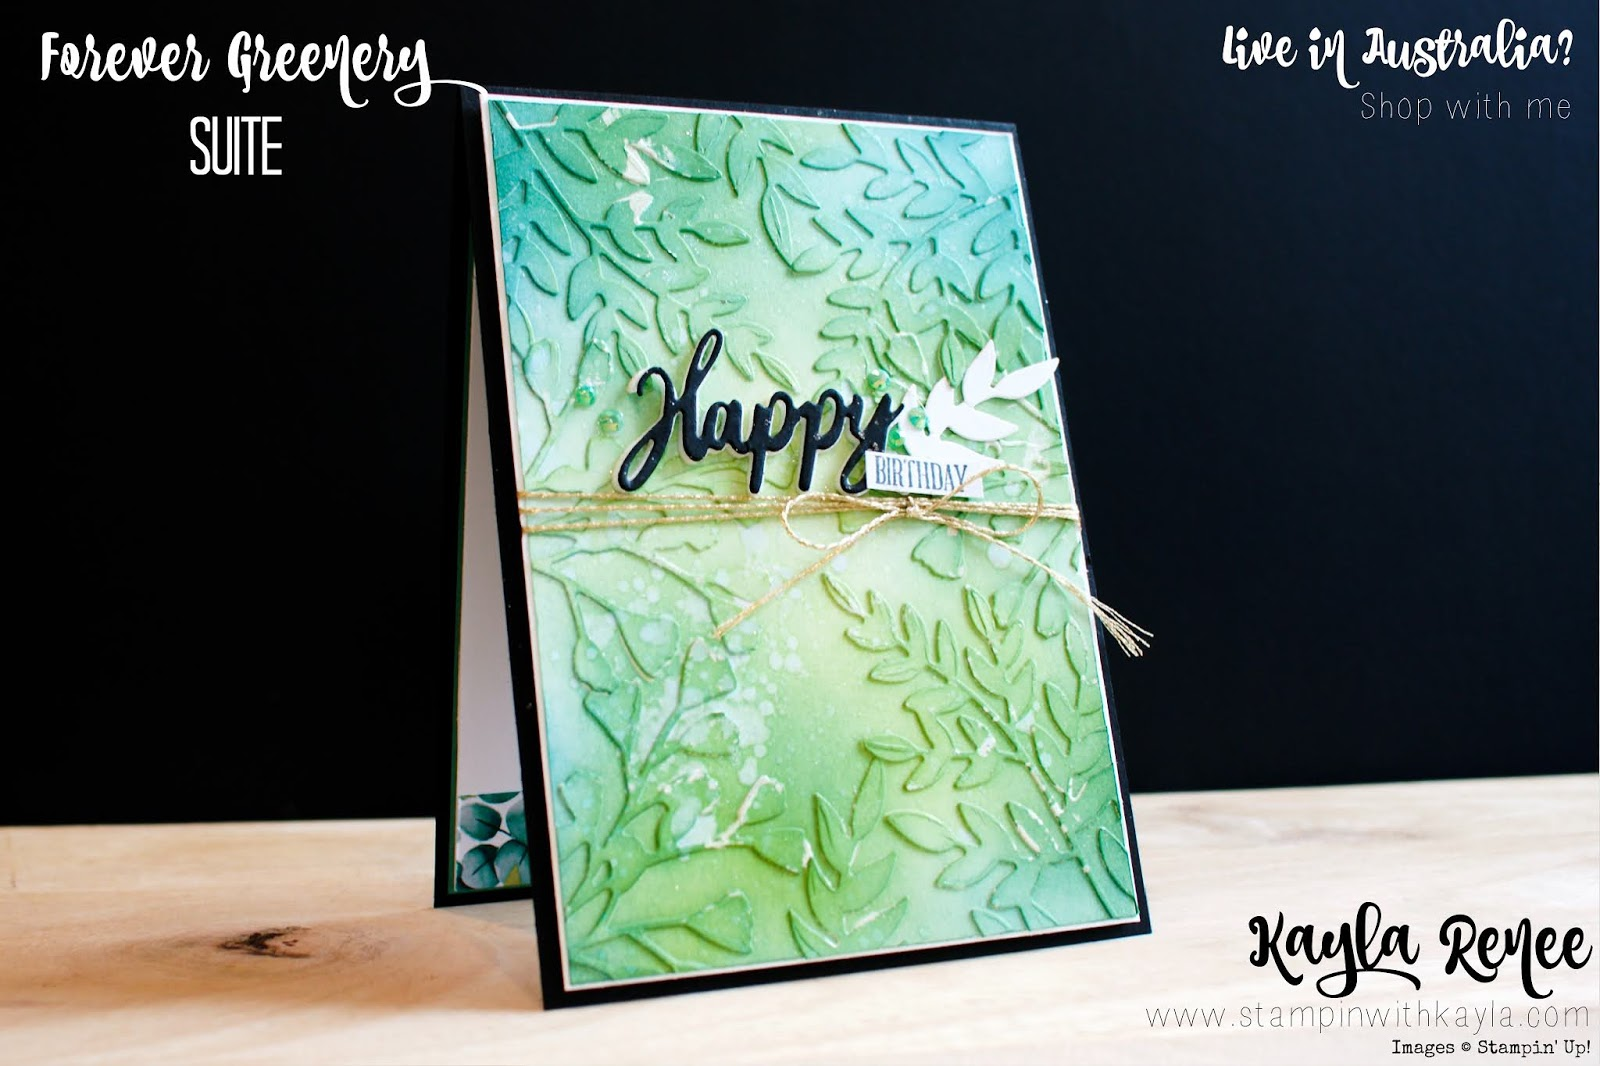 Stampin' Up! Forever Greenery ~ Happy Birthday Card